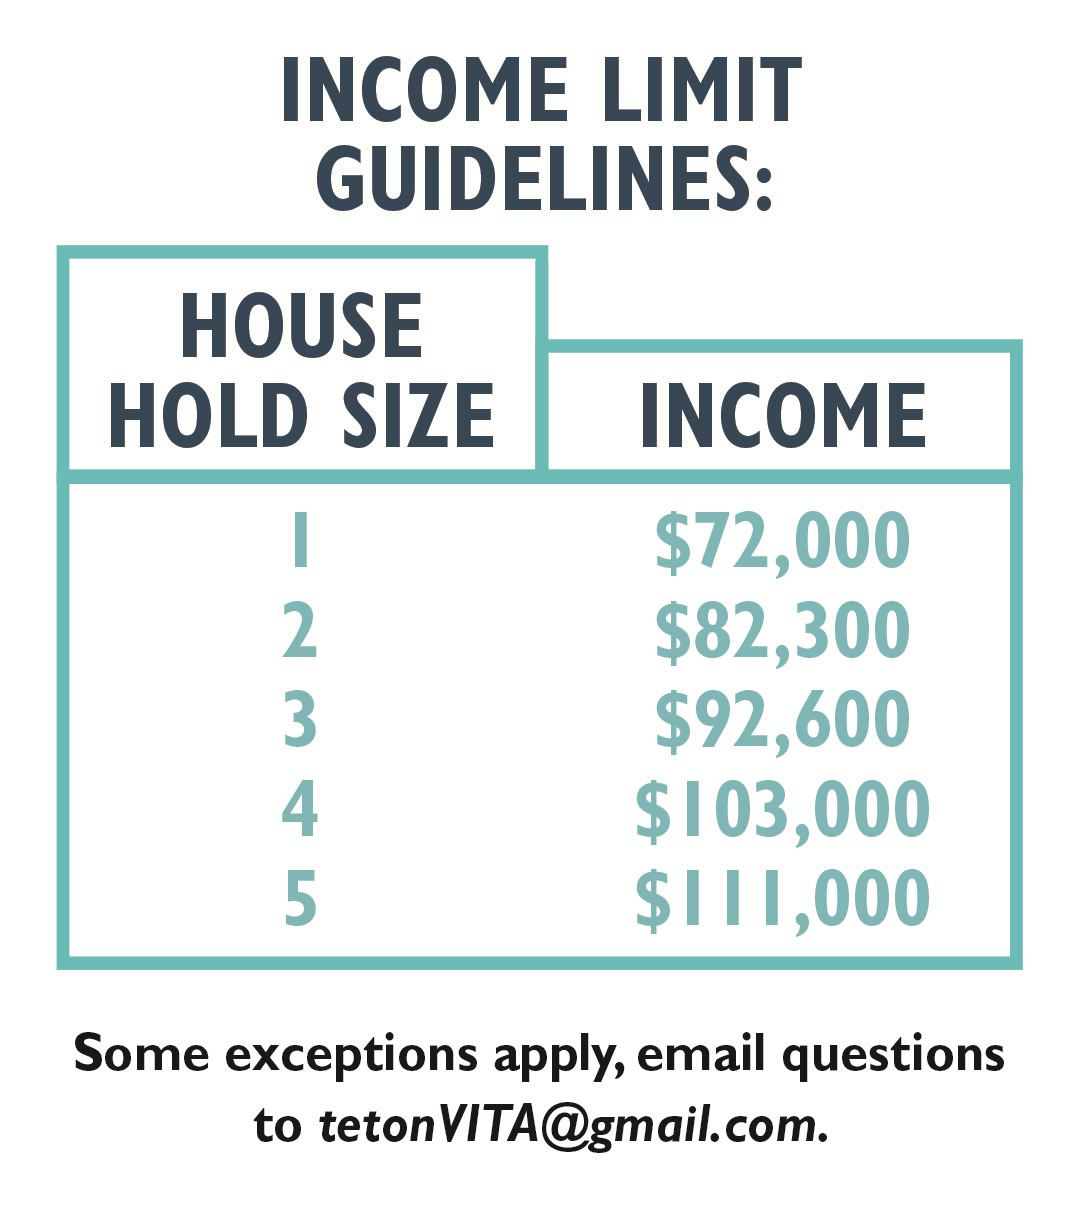 image showing income limit guidelines